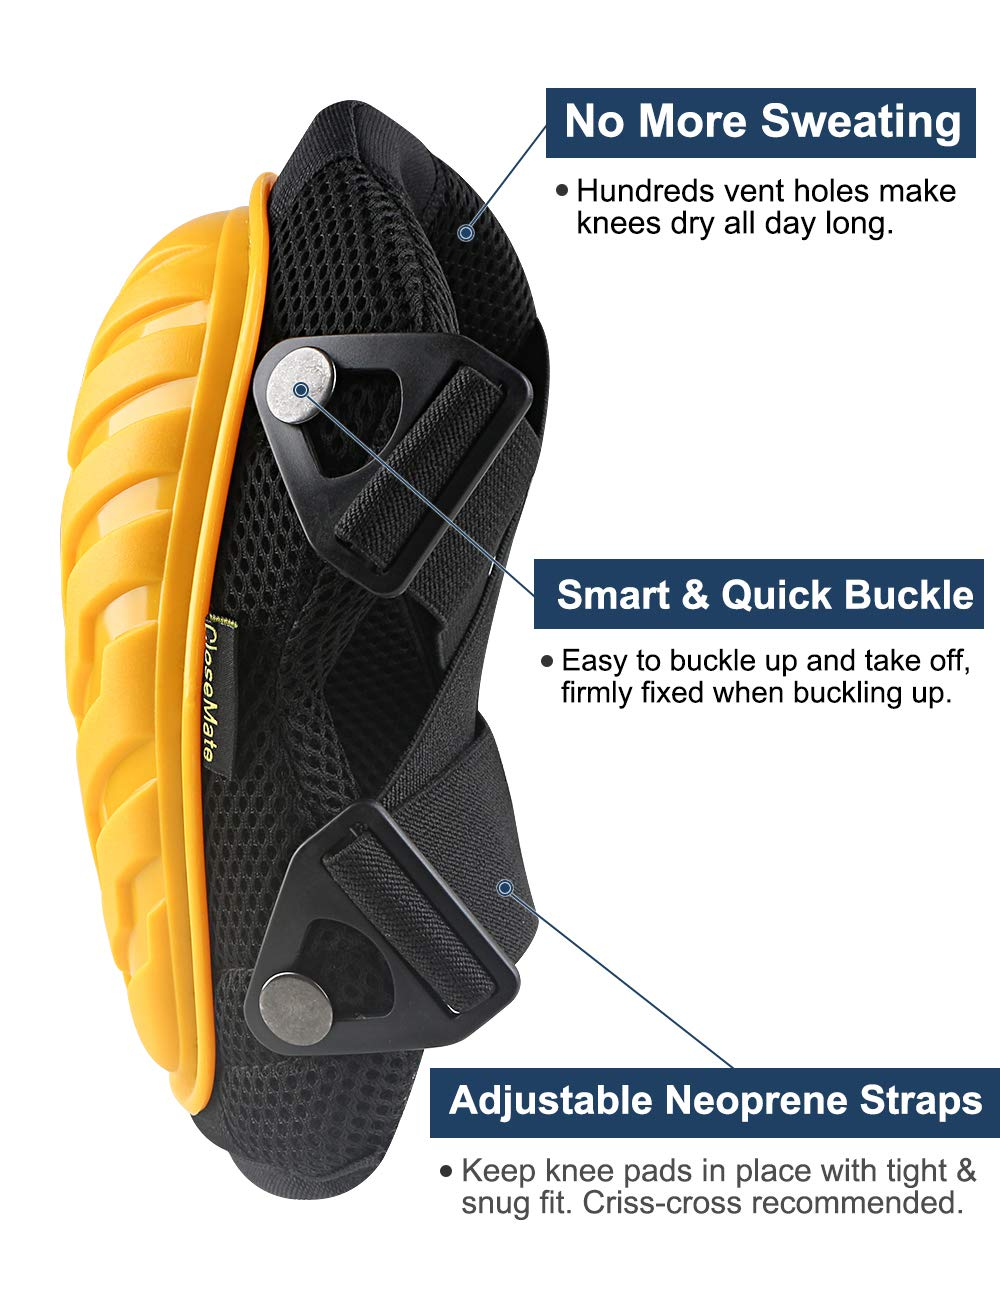 Anti-Slip Knee Pads for Work by Closemate, with Cozy Gel and EVA Foam Cushion, Designed for Gardening, Cleaning, Construction, Flooring and Carpeting, Professional Knee Protector by Closemate (Image #3)